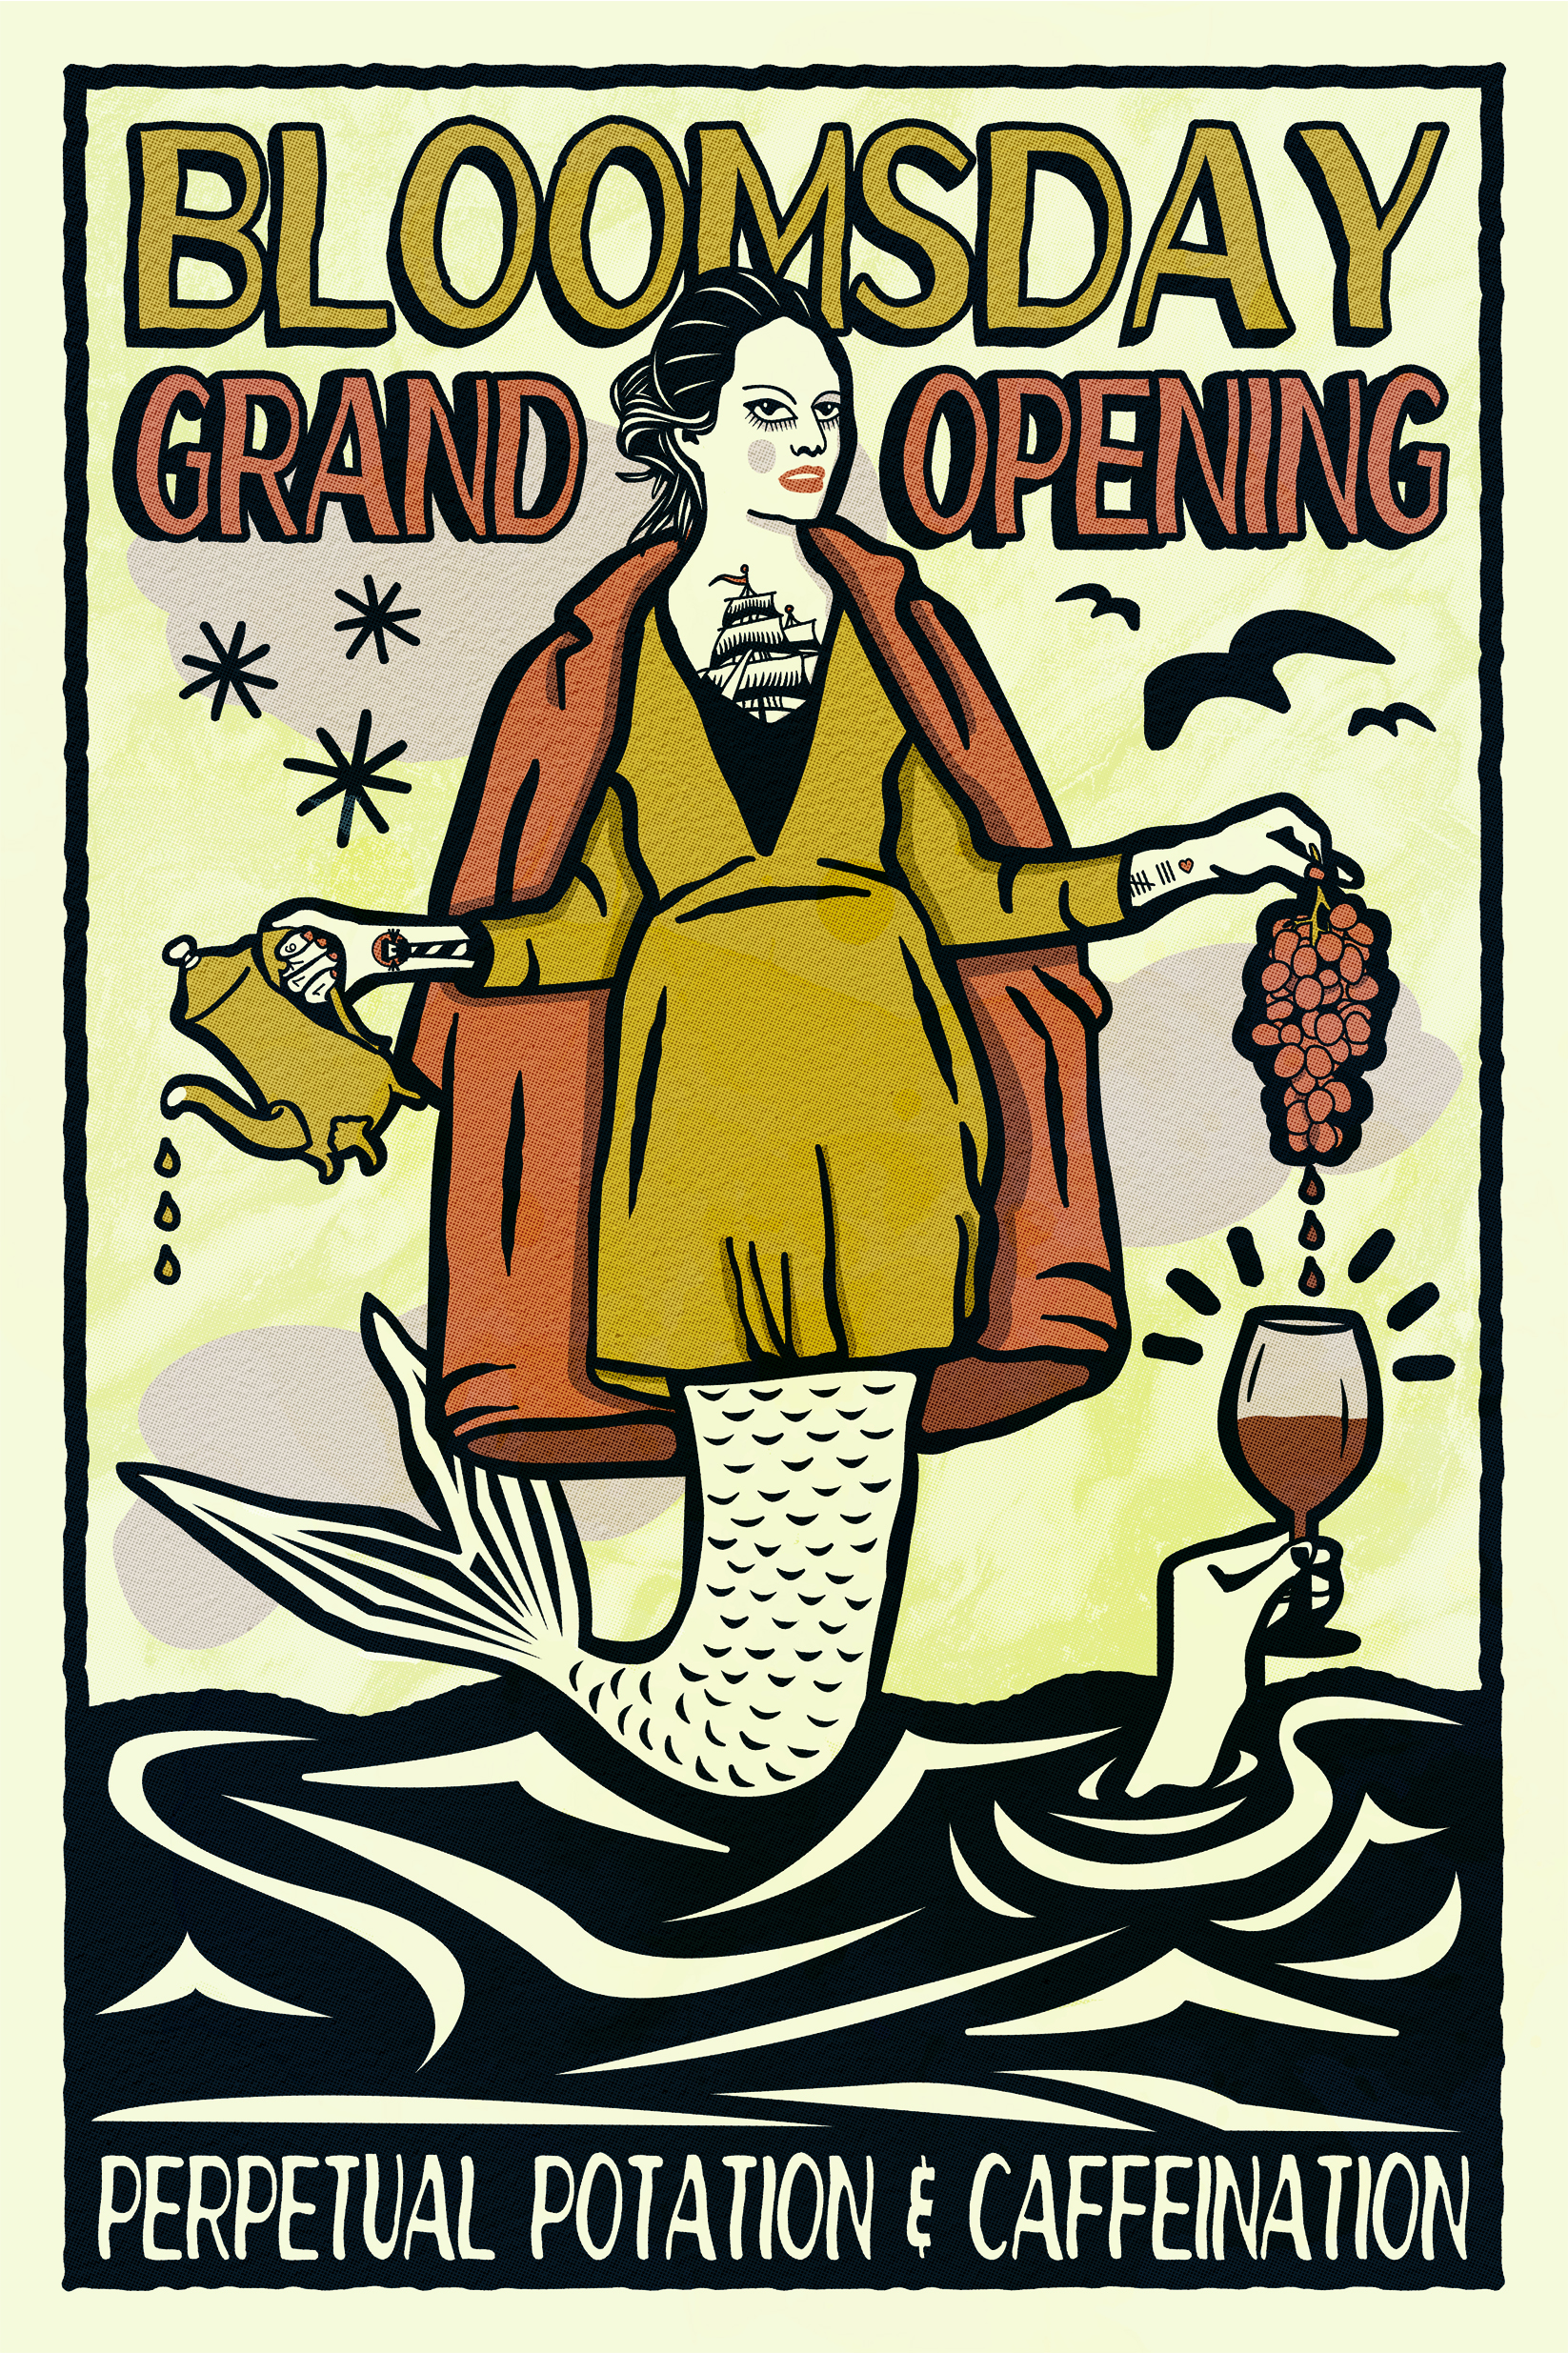 Bloomsday Cafe - Grand Opening, 2019Bloomsday's logo features a siren, so I wanted to incorporate one in their grand opening poster. Only, since they focus on natural wine and coffee, I figured she should be pouring some of each out for the homies… or sunken sailors.